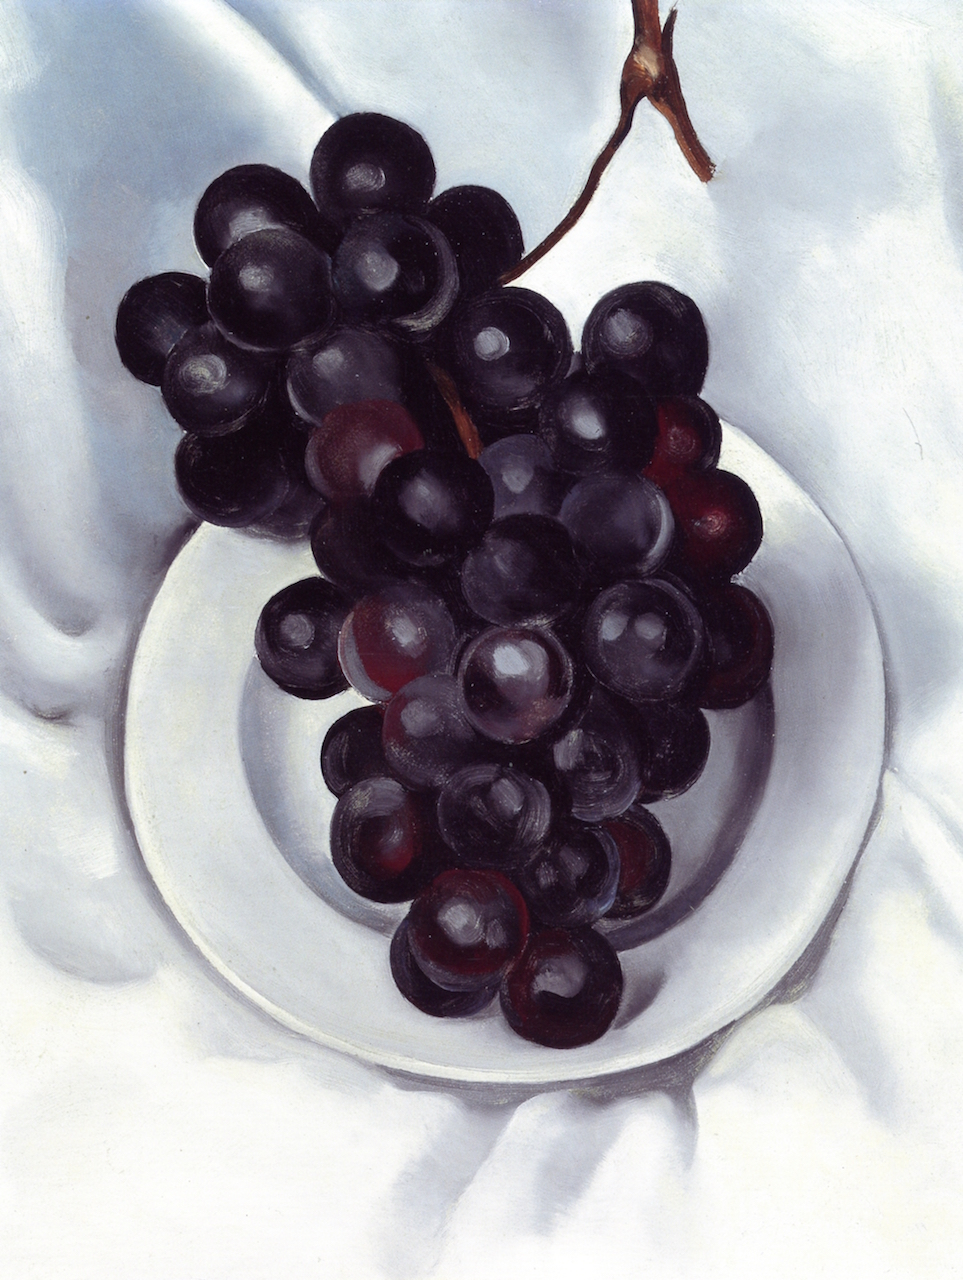 Grapes No. 2 Georgia O'Keeffe ,1927